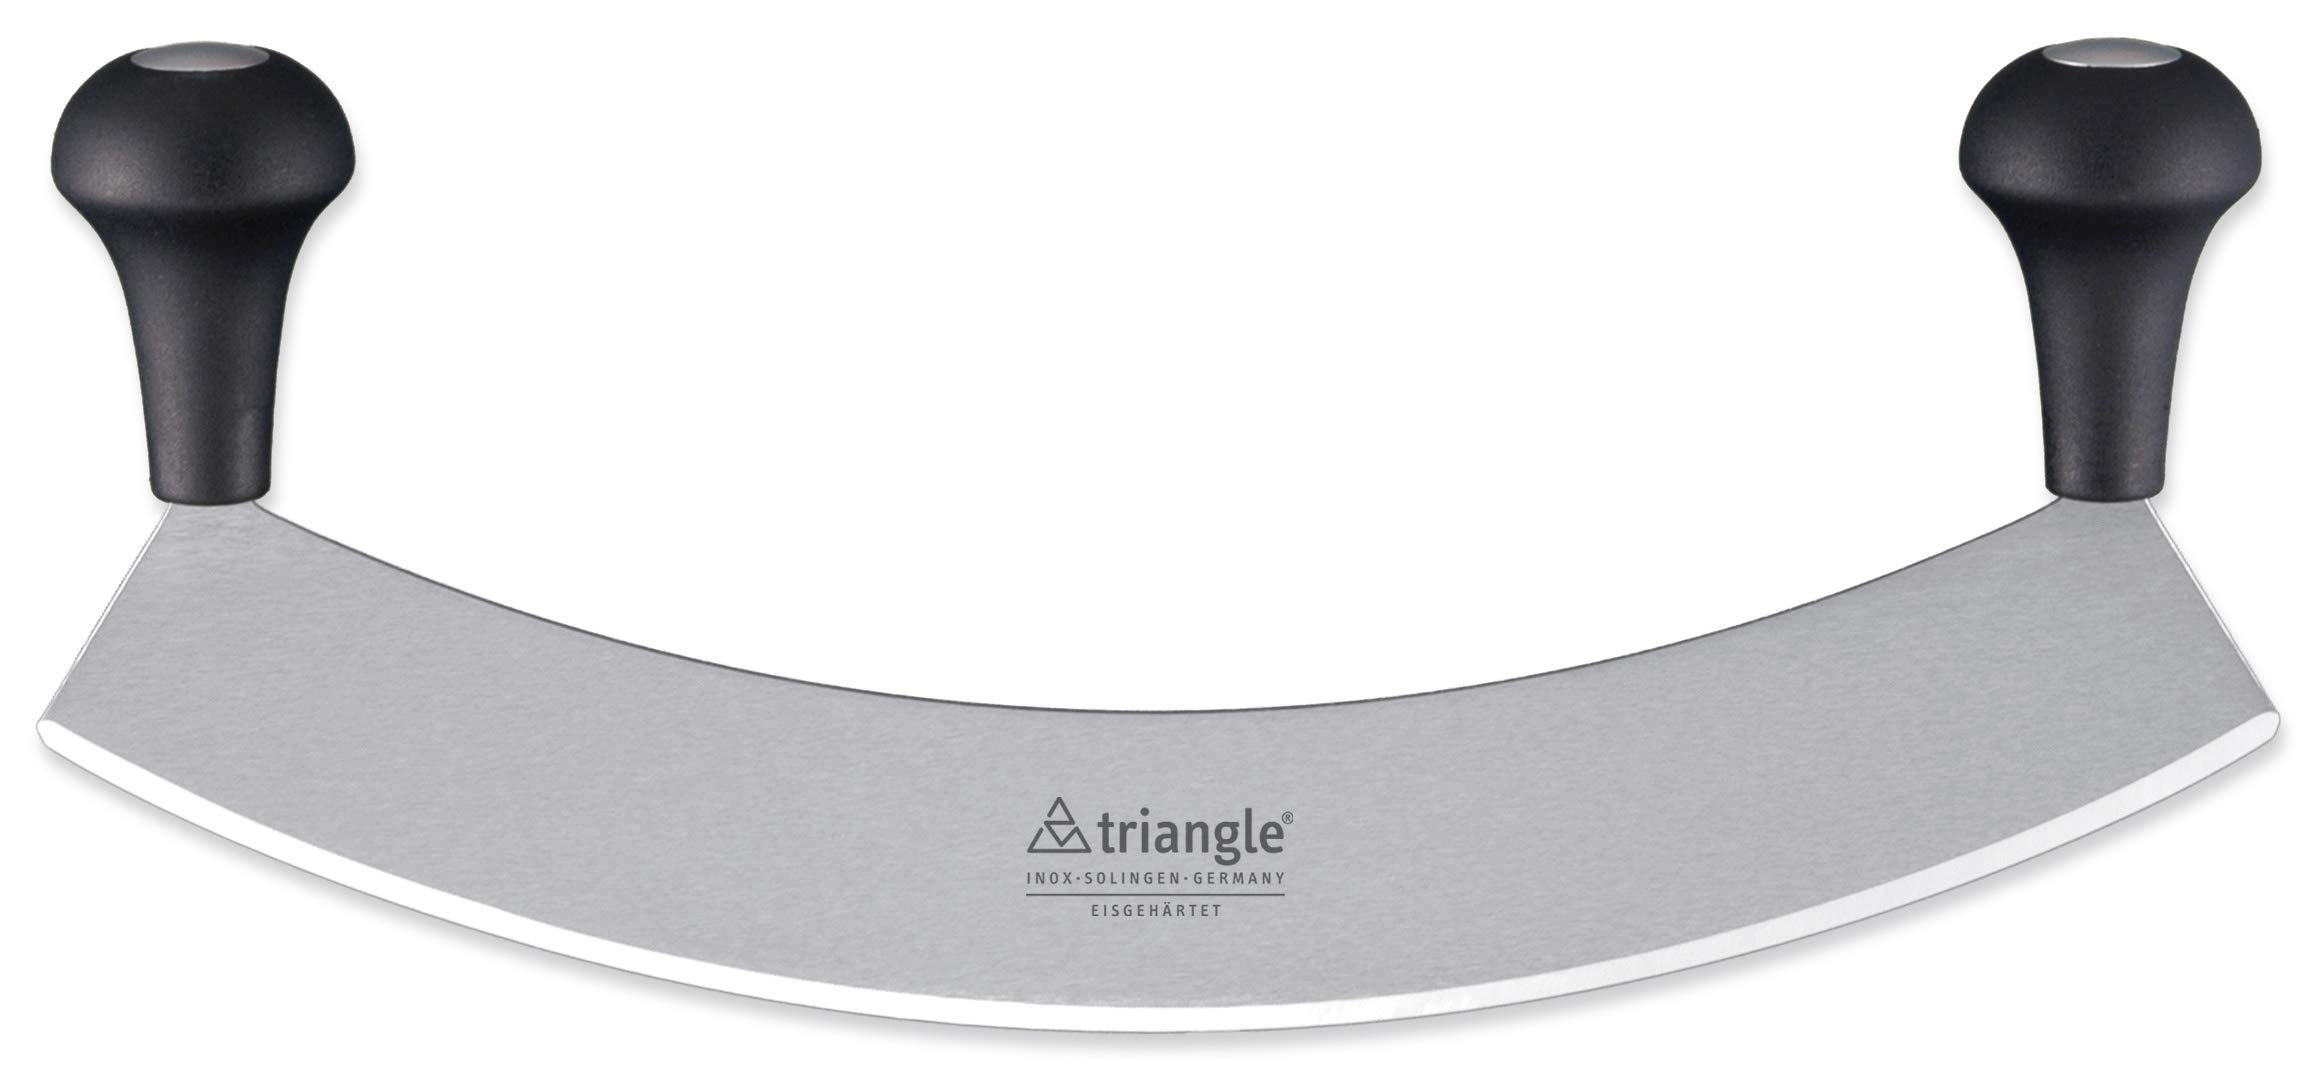 Triangle Germany 14 inch Mezzaluna Knife, Rust-Free Stainless Steel Curved Blade with Ergonomic Handle, Pizza Cutter, Vegetable, Salad and Fruit Chopper, Professional-grade, Dishwasher Safe by TRIANGLE